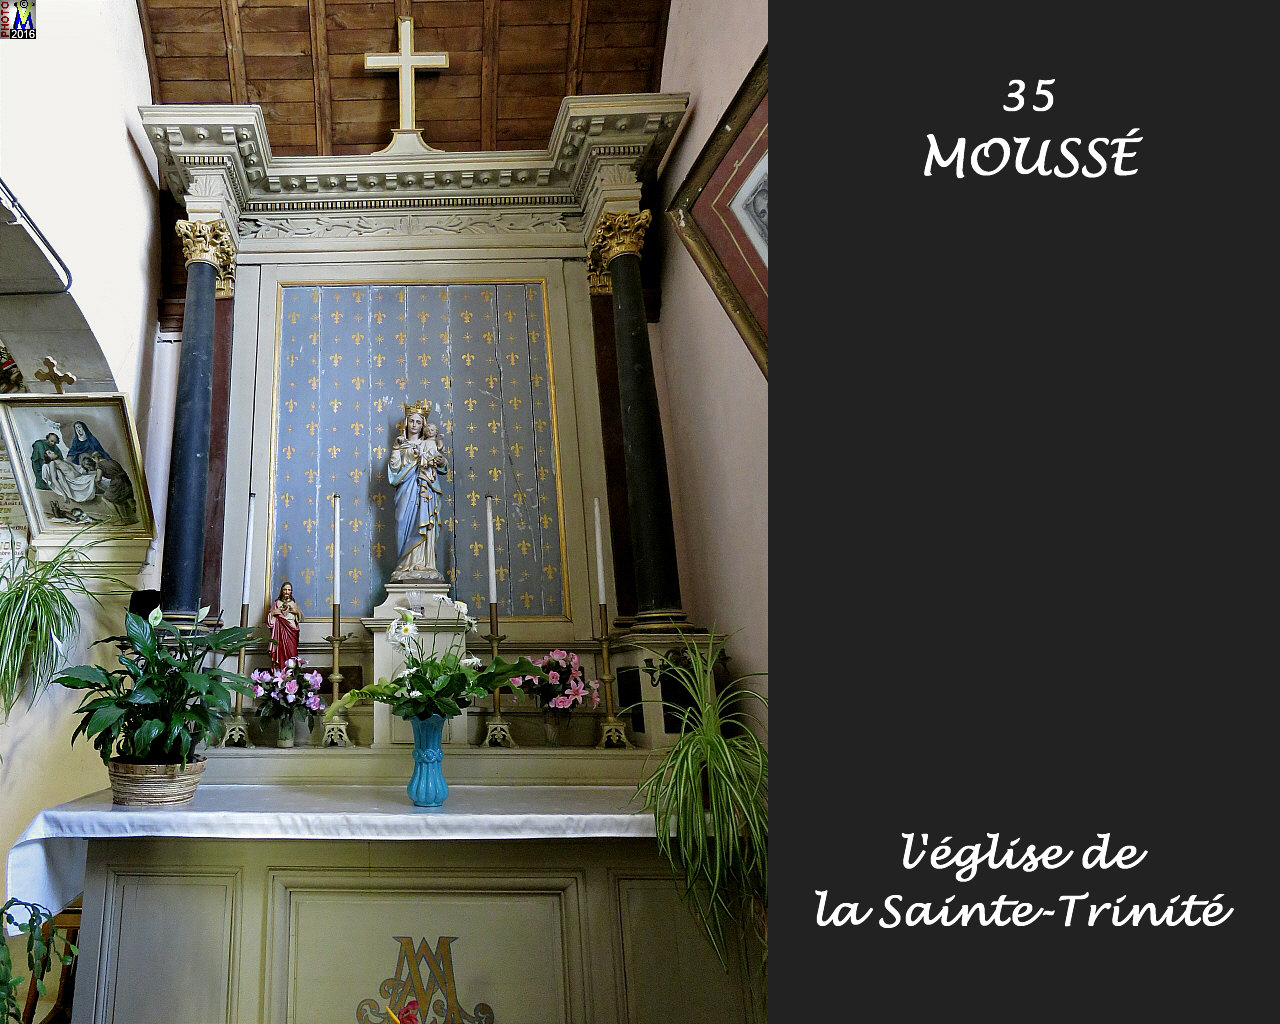 35MOUSSE_eglise_1120.jpg